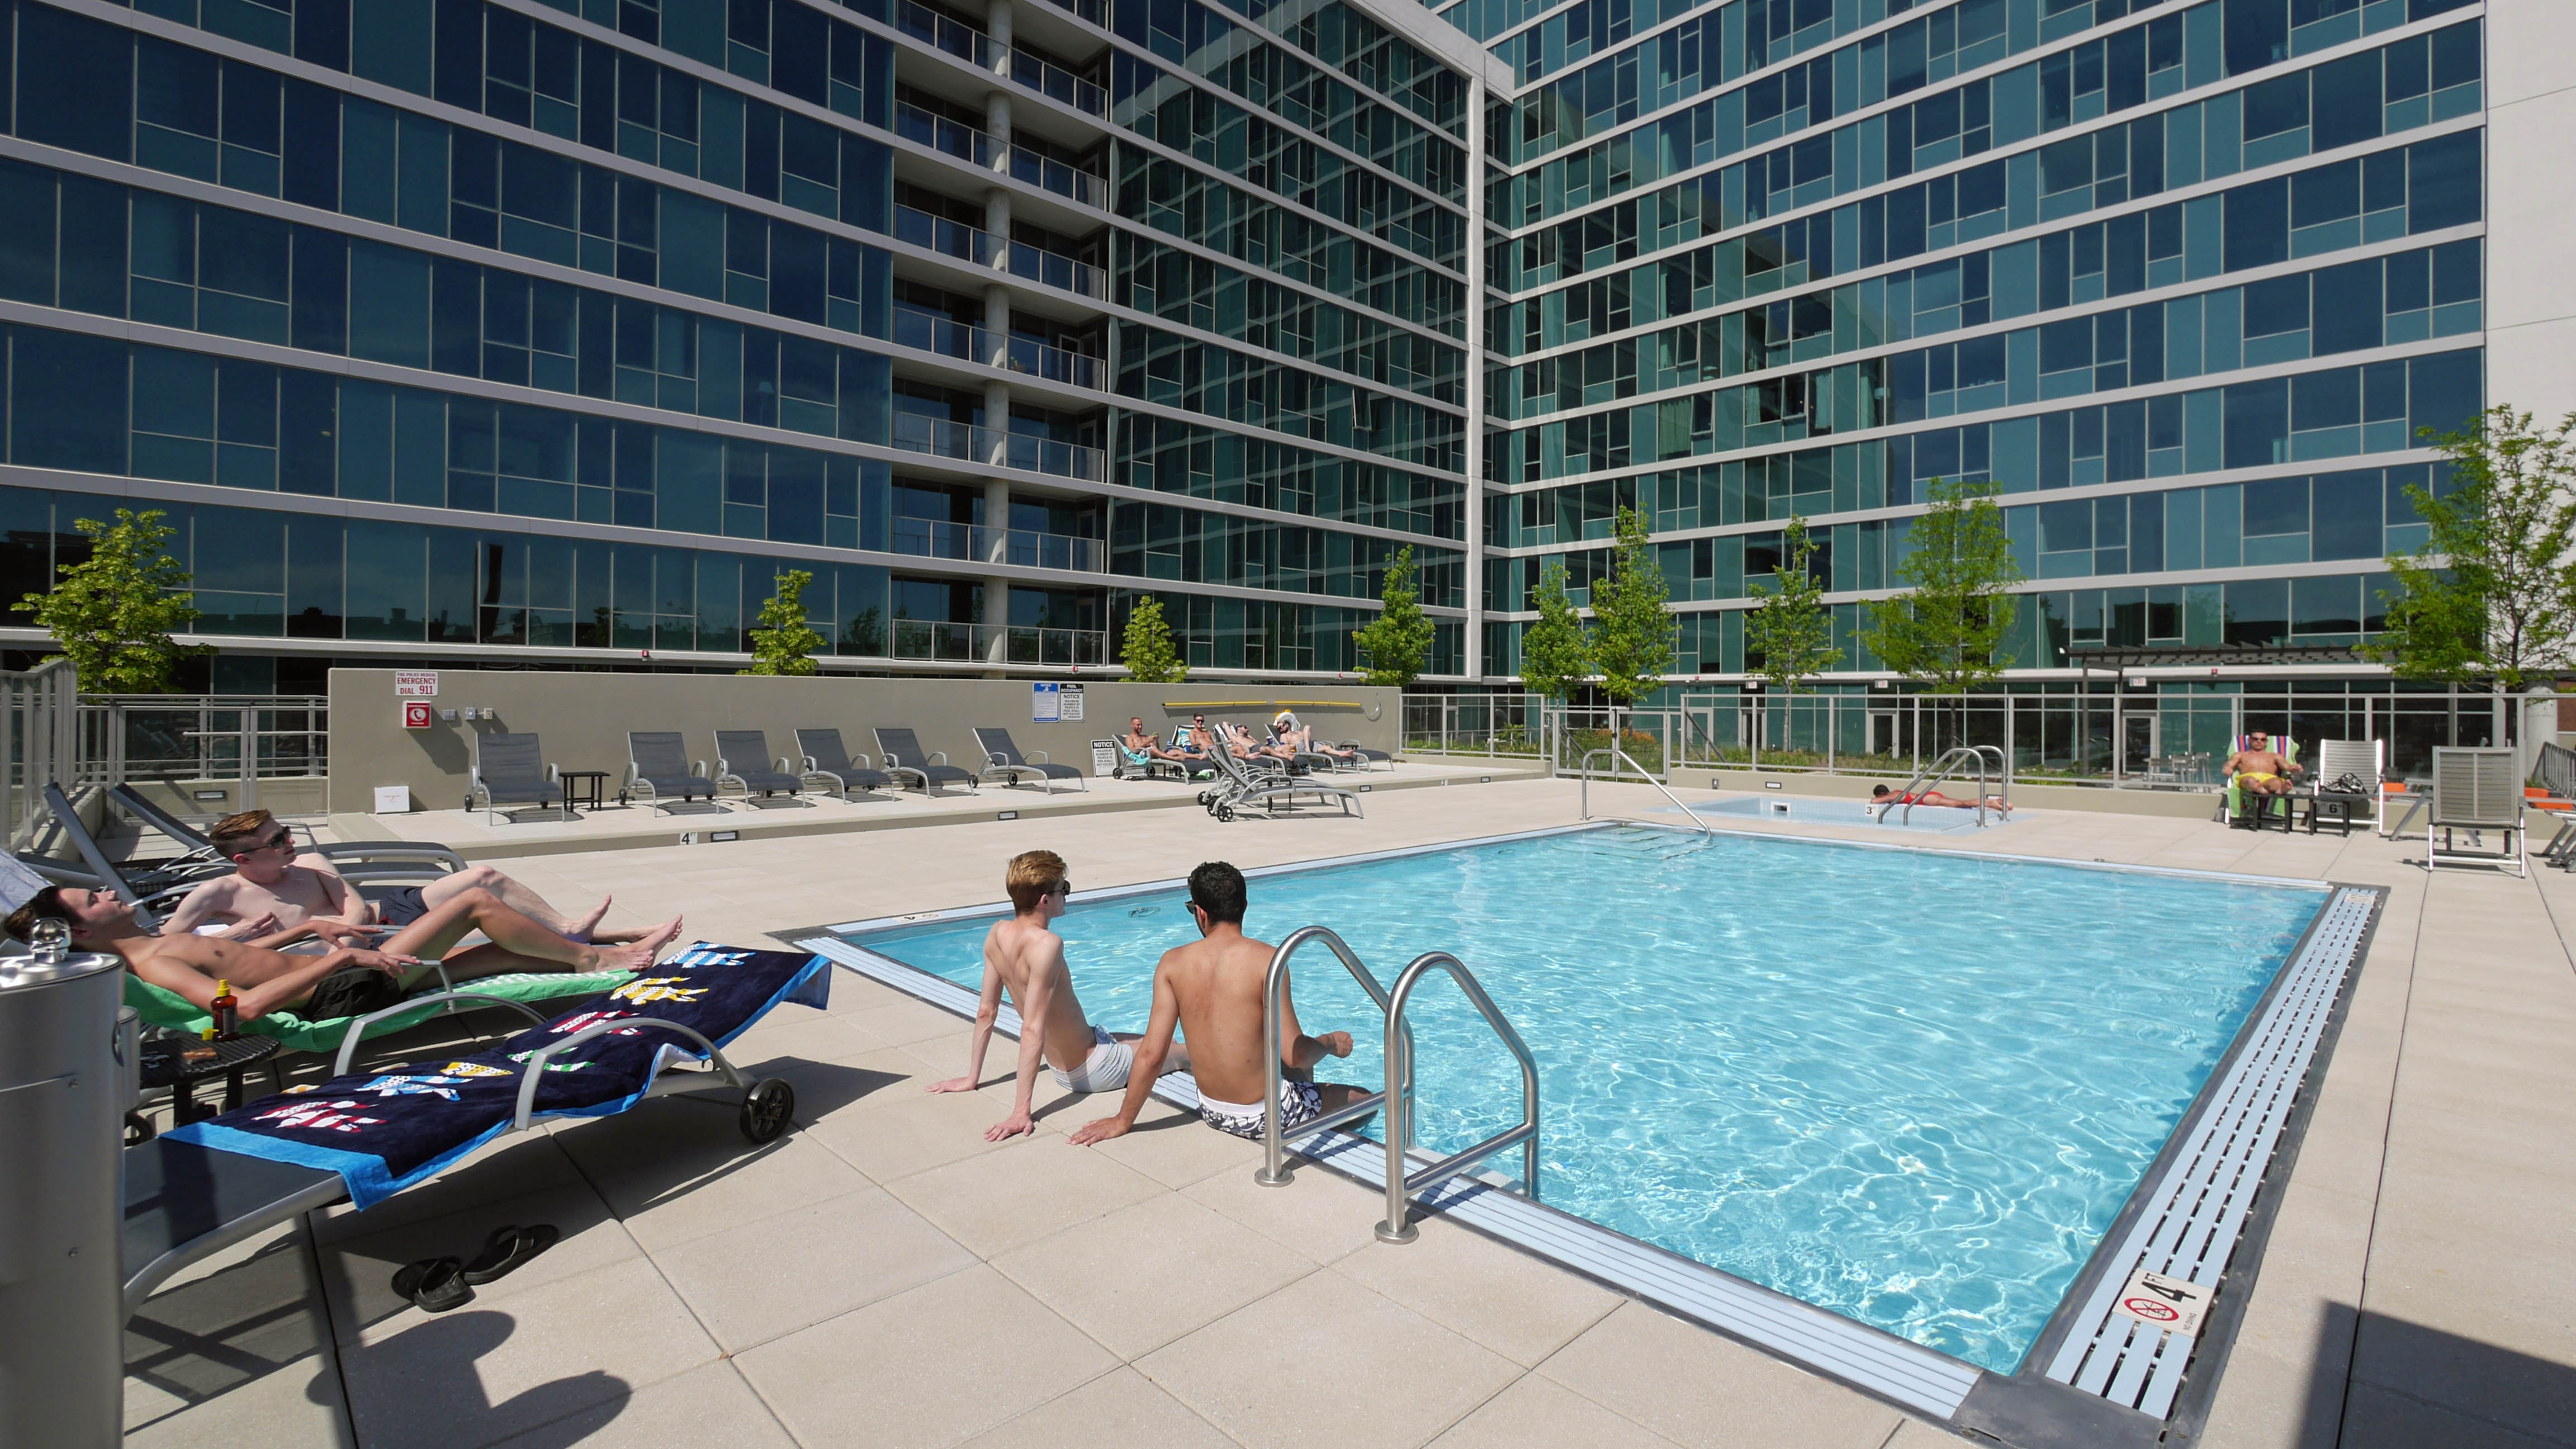 riverwalk view luxury hotel chicago thewestinchicagorivernorth index private westin lincoln the il hotels north club river global